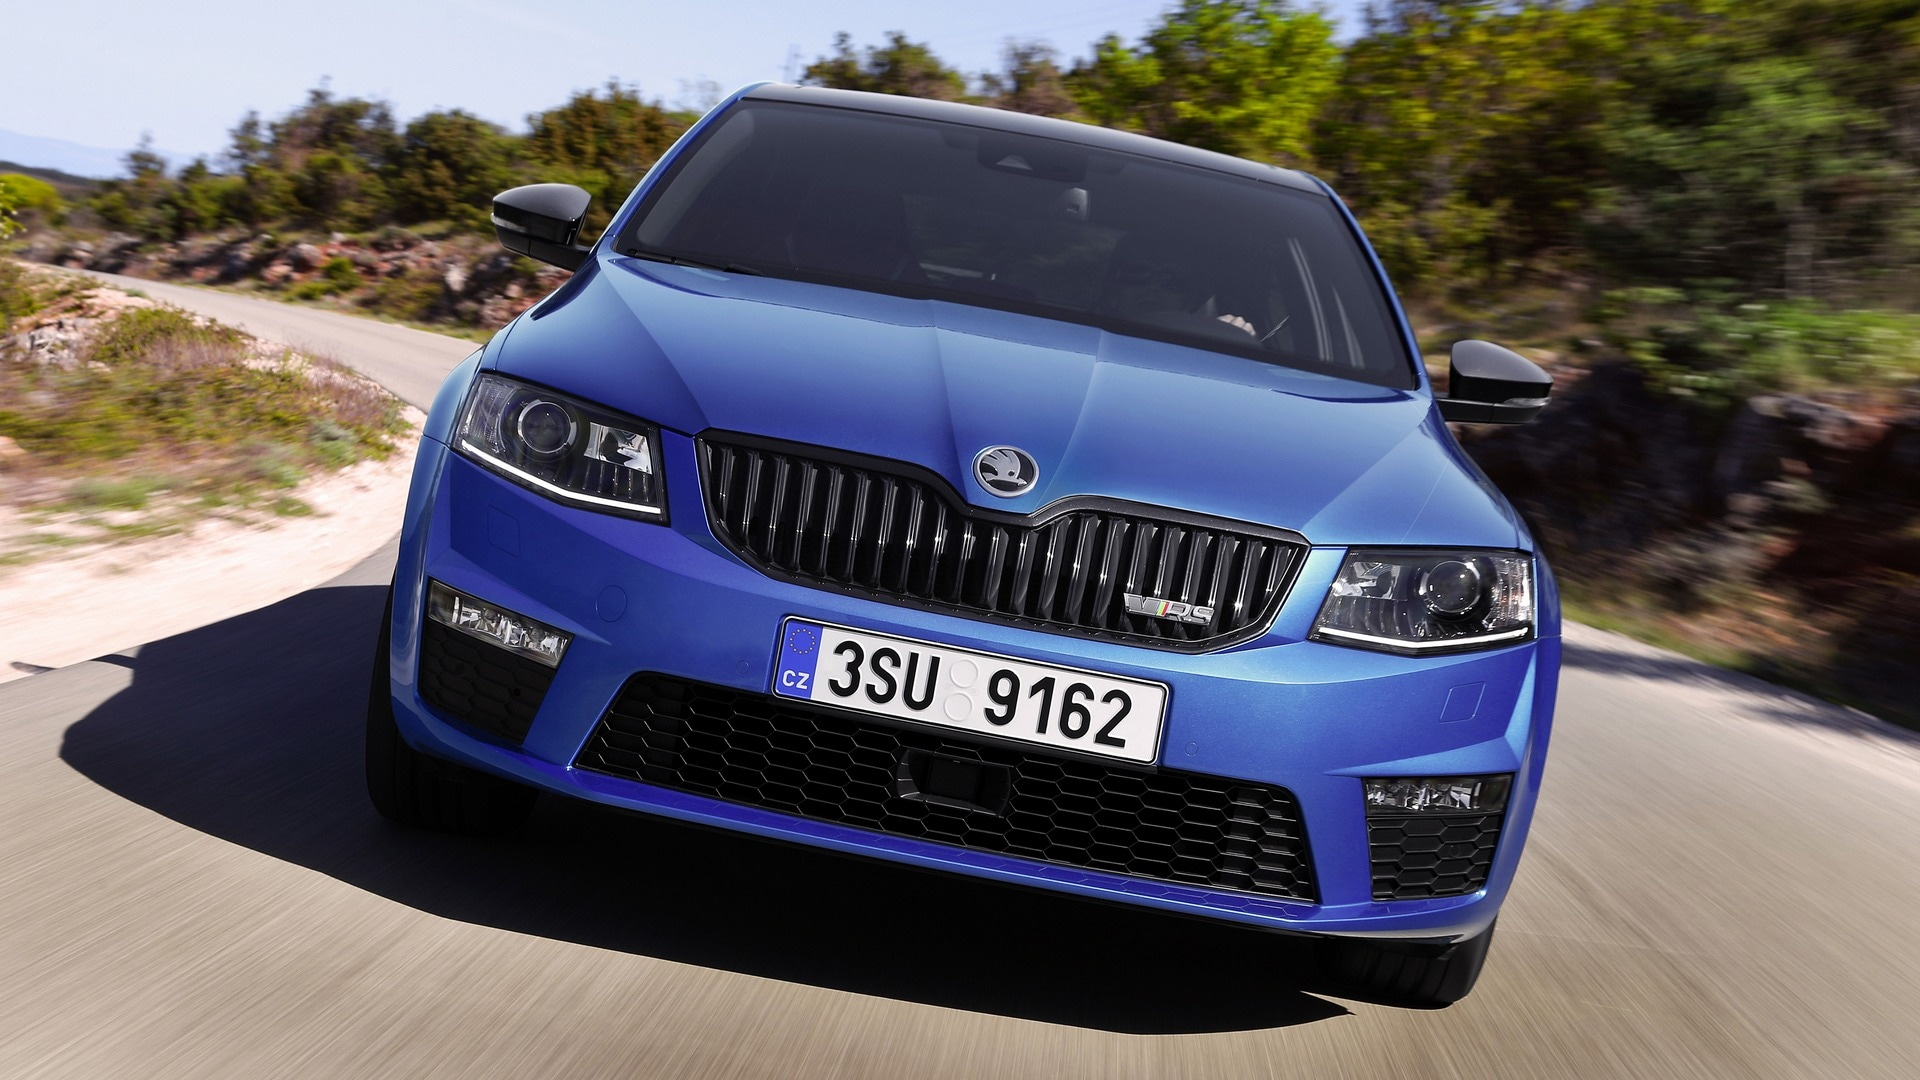 A frontal view of the grille in the Skoda Octavia RS.